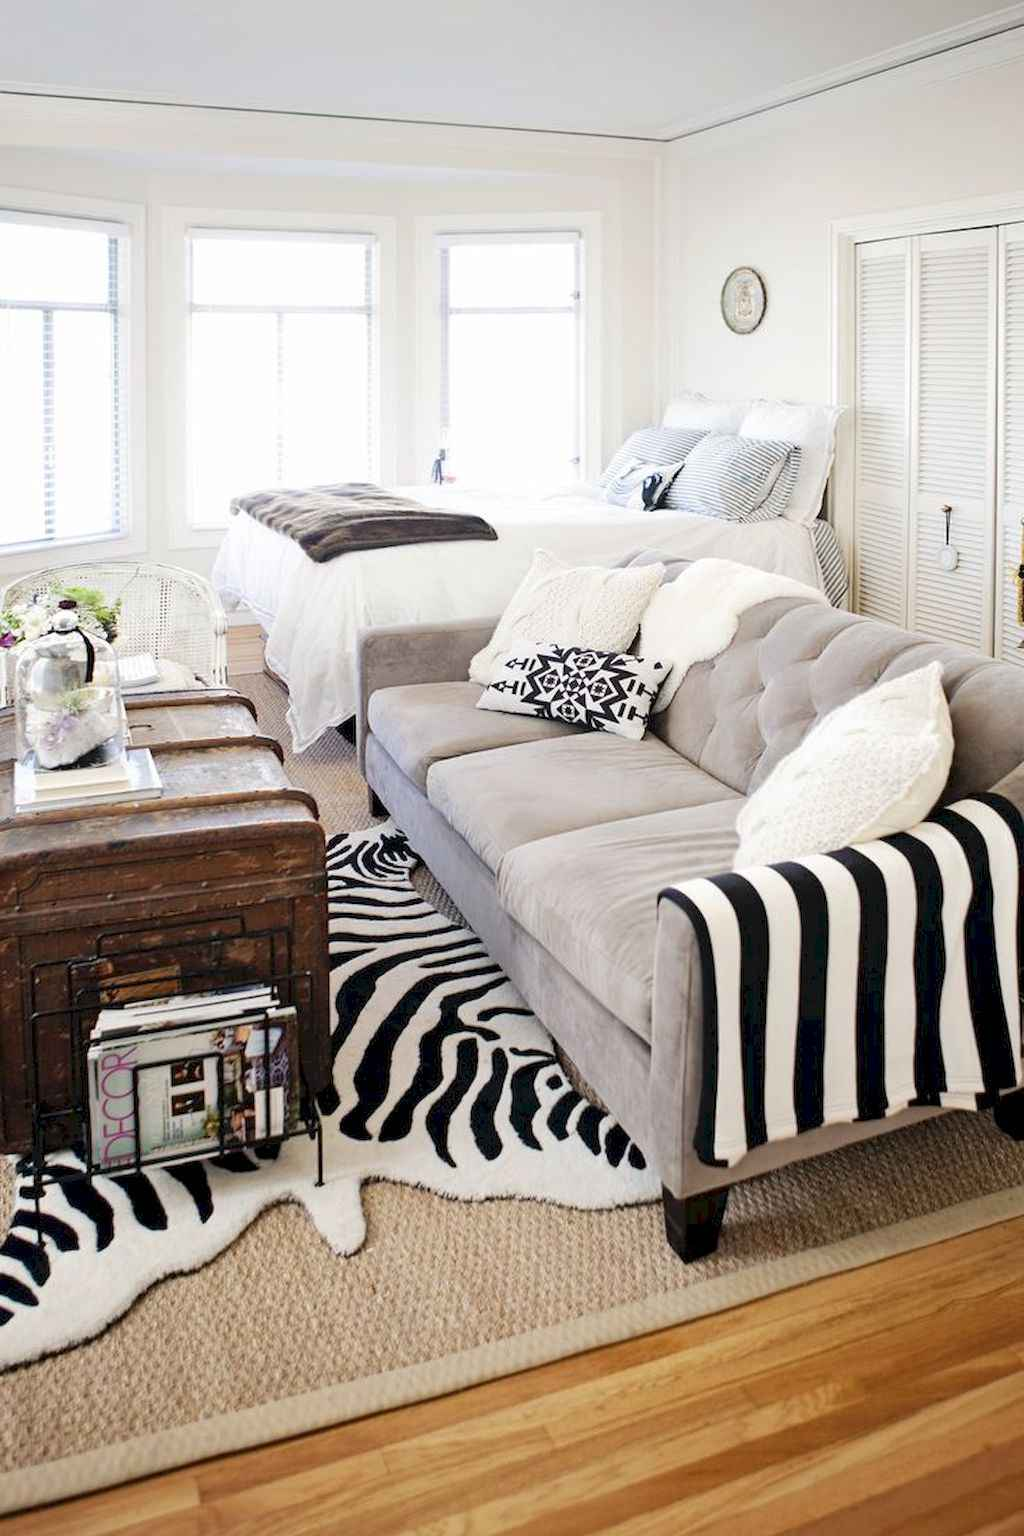 Cool small apartment decorating ideas on a budget (30)